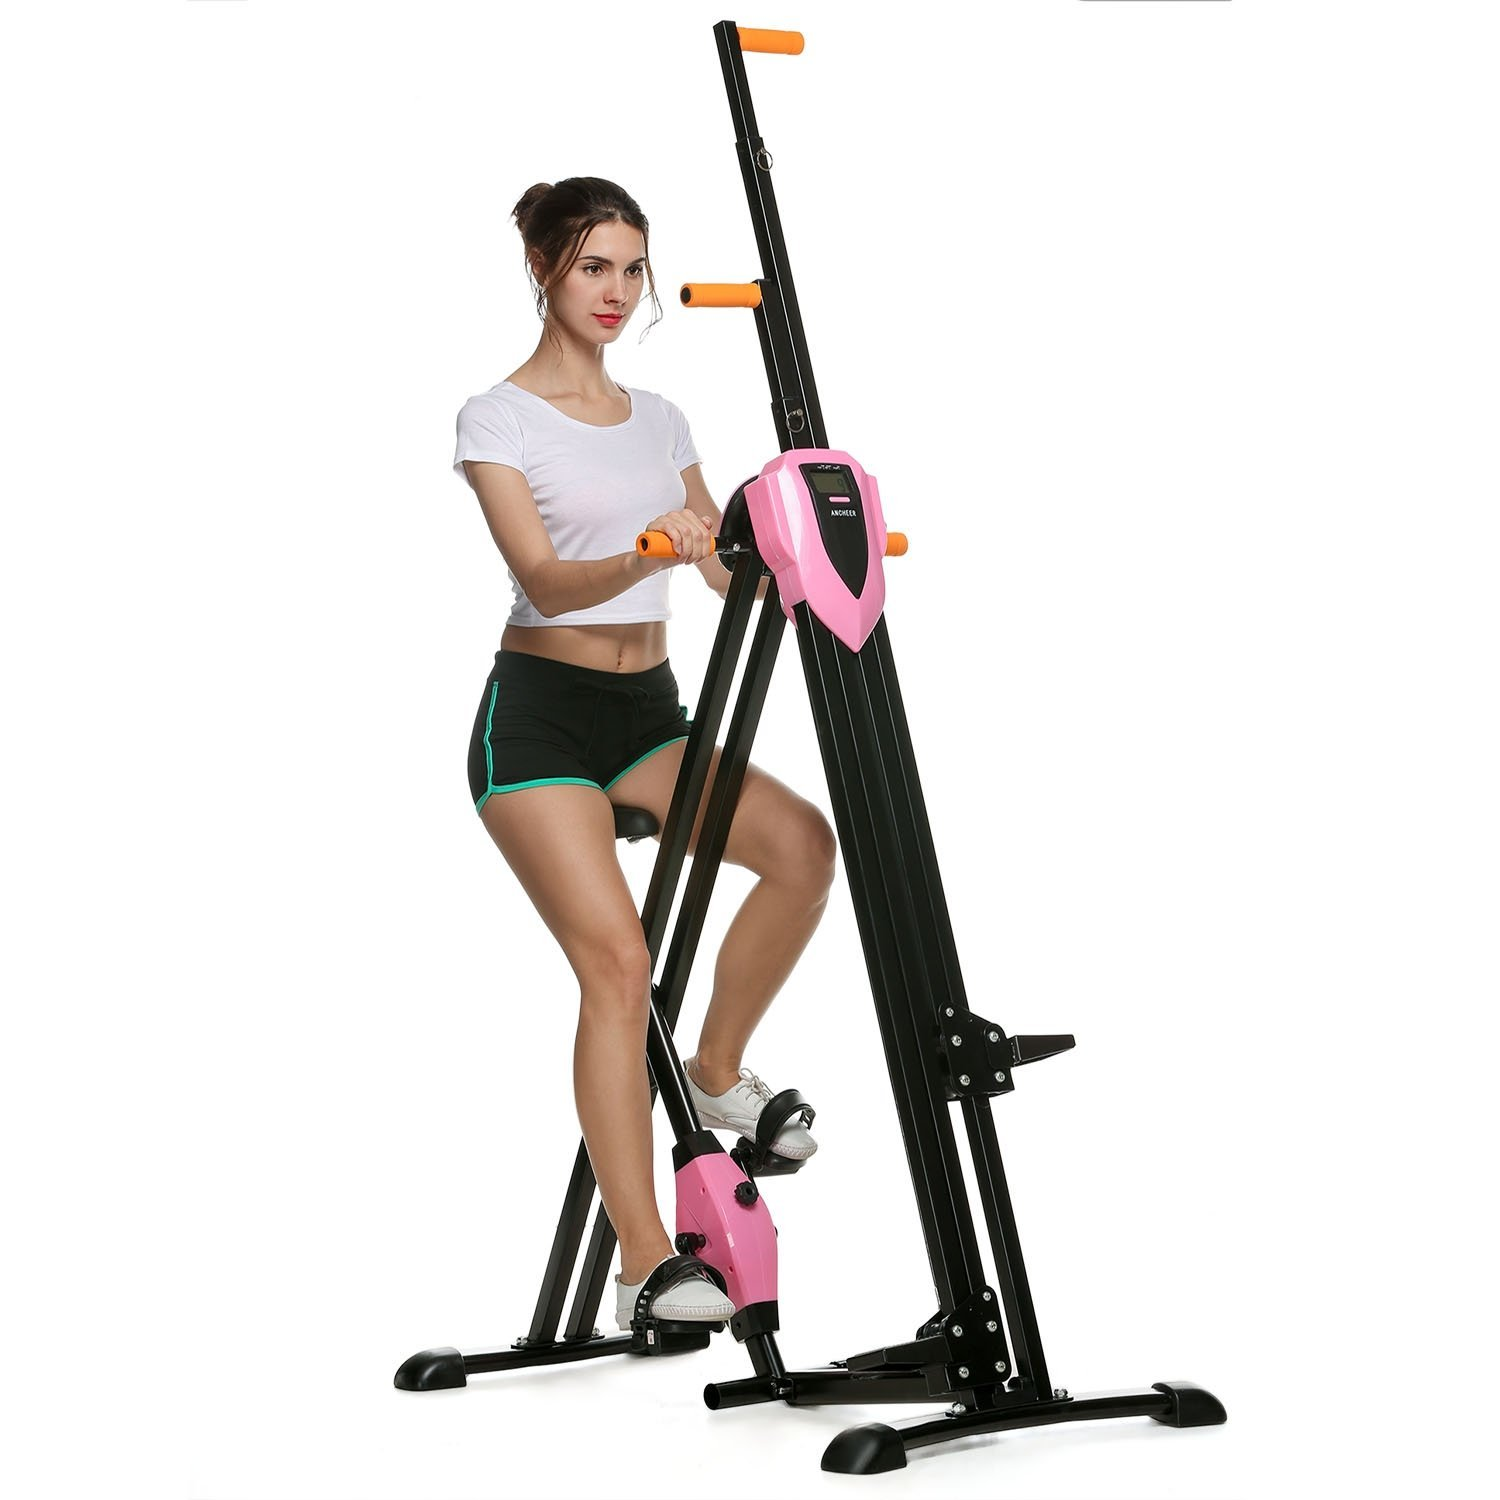 Ancheer Vertical Climber Machine Total Body Workout